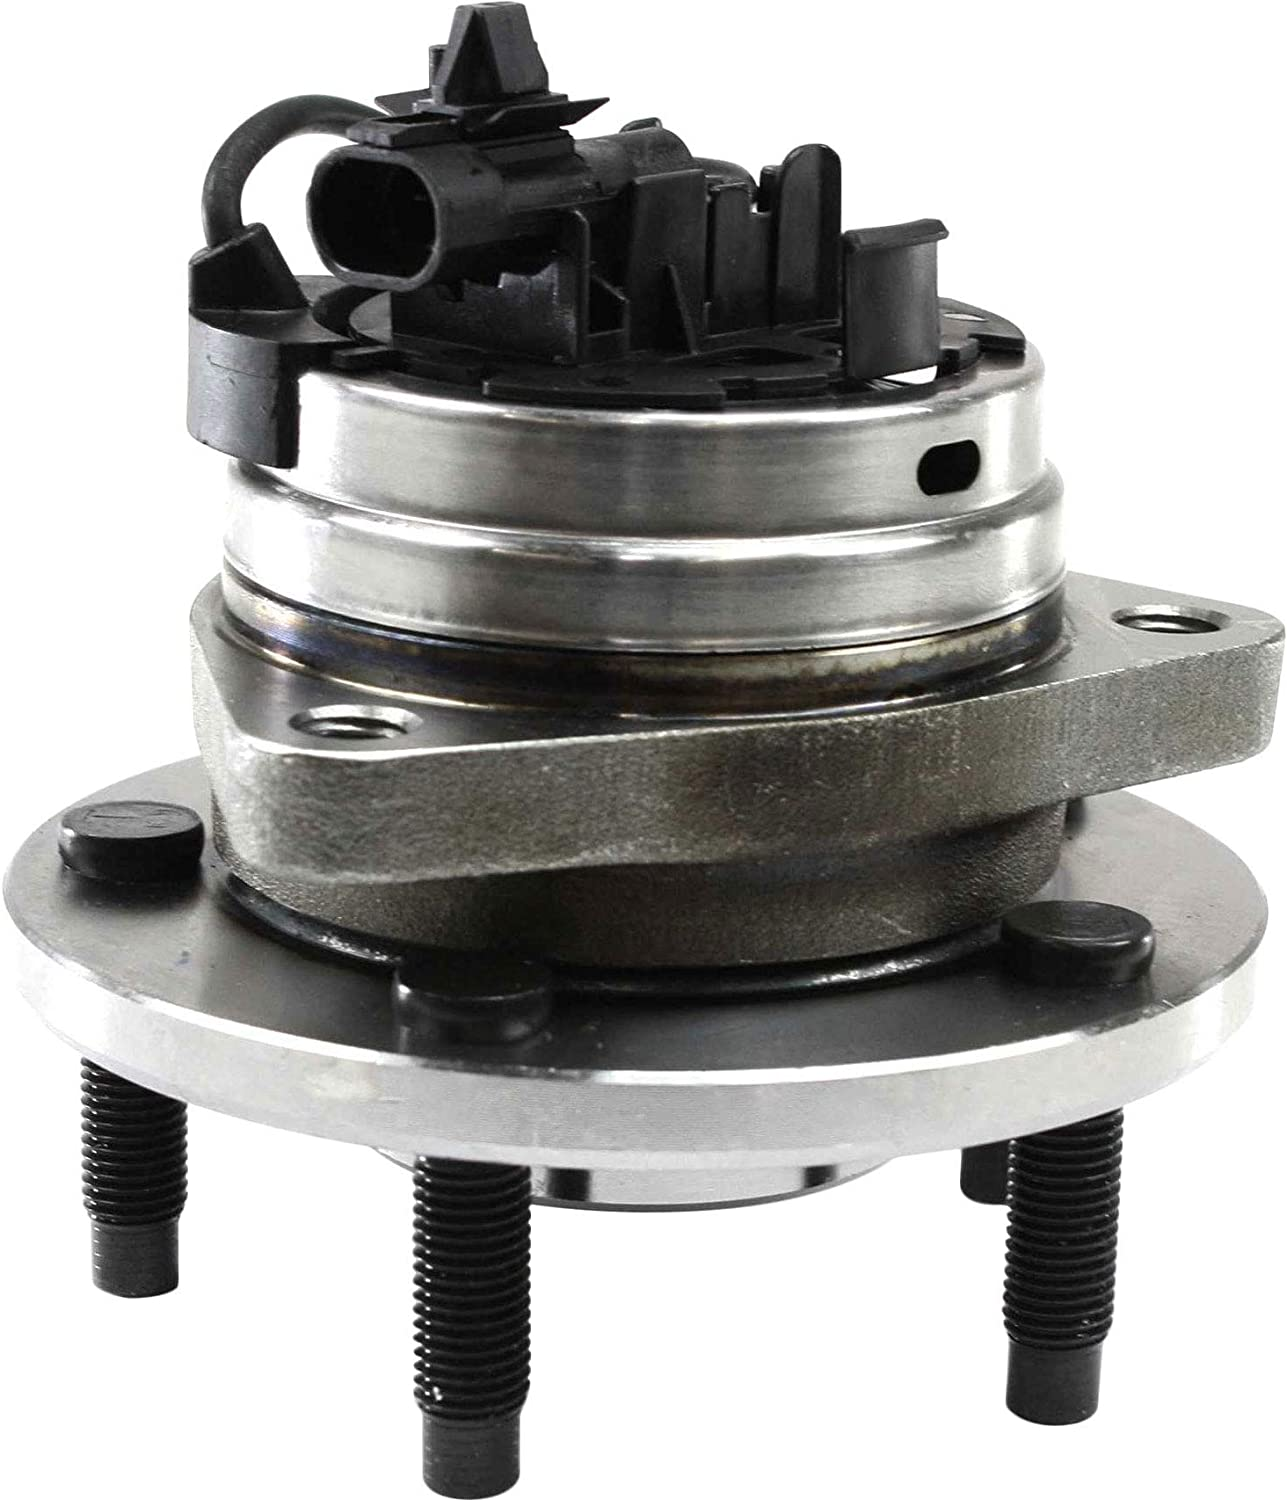 Wheel Hub Compatible For 2004-2012 Chevrolet Malibu 2005-2010 Pontiac G6 4Cyl 6Cyl 2.2L 3.5L 2.4L 3.6L 3.9L Front Left Driver or Right Passenger With Ball Bearing